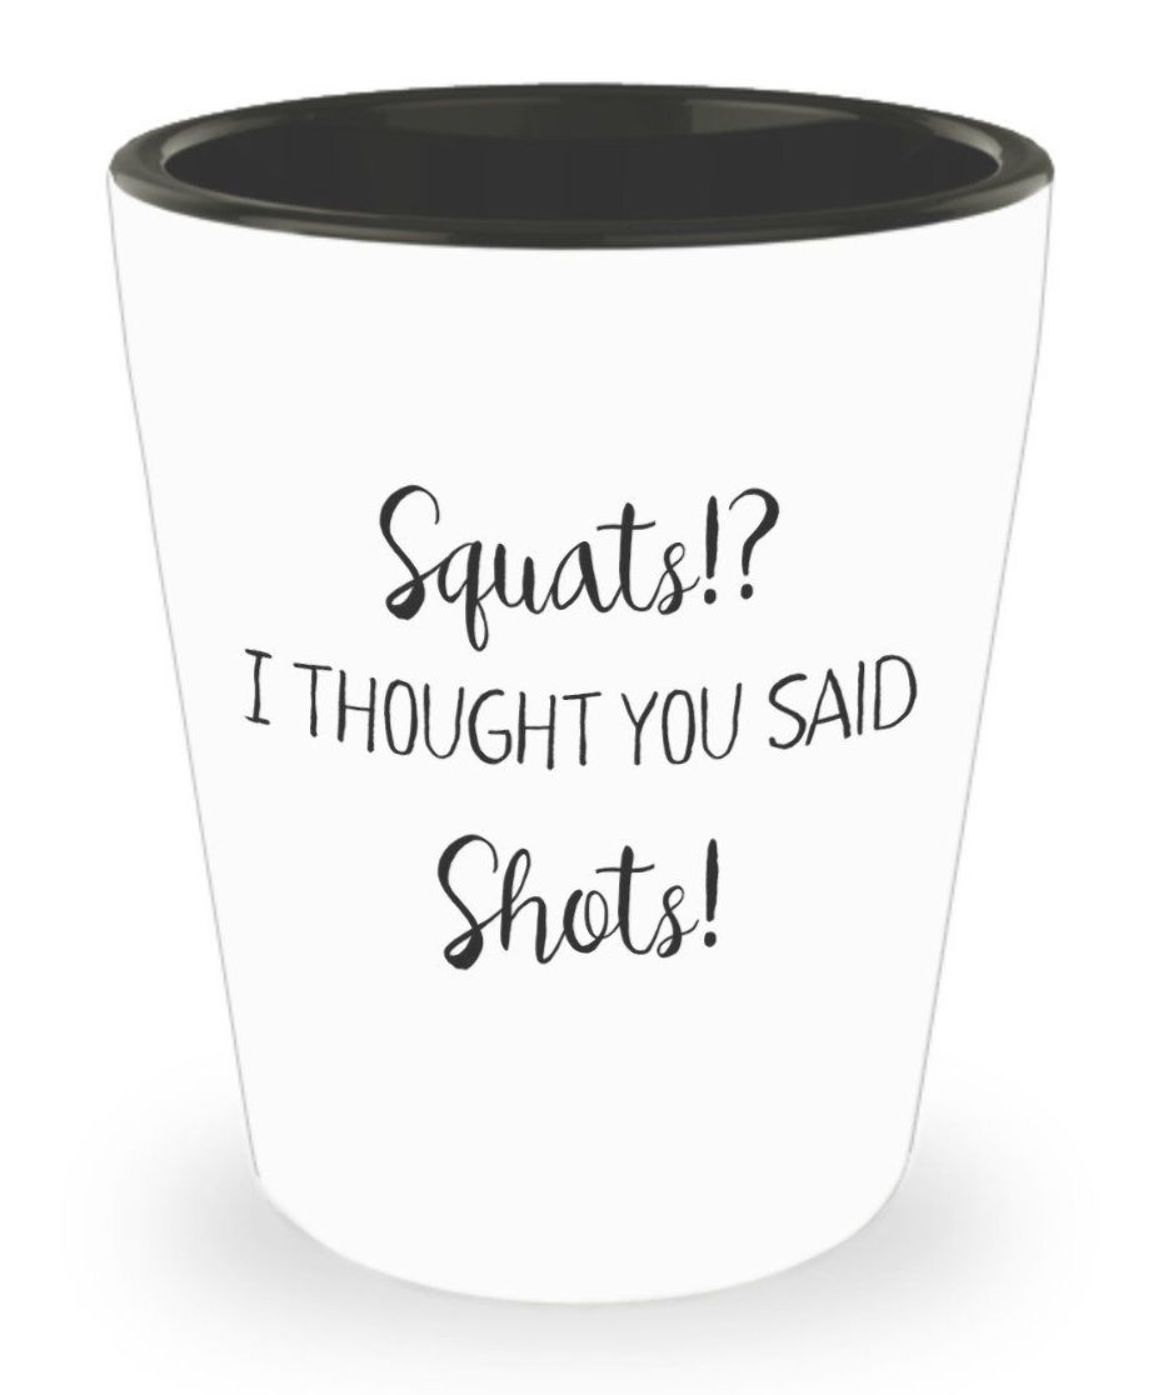 Personalized Shot Glass - Custom Shot Glass - Squats? I thought you said shots! - Funny Gifts by Ma